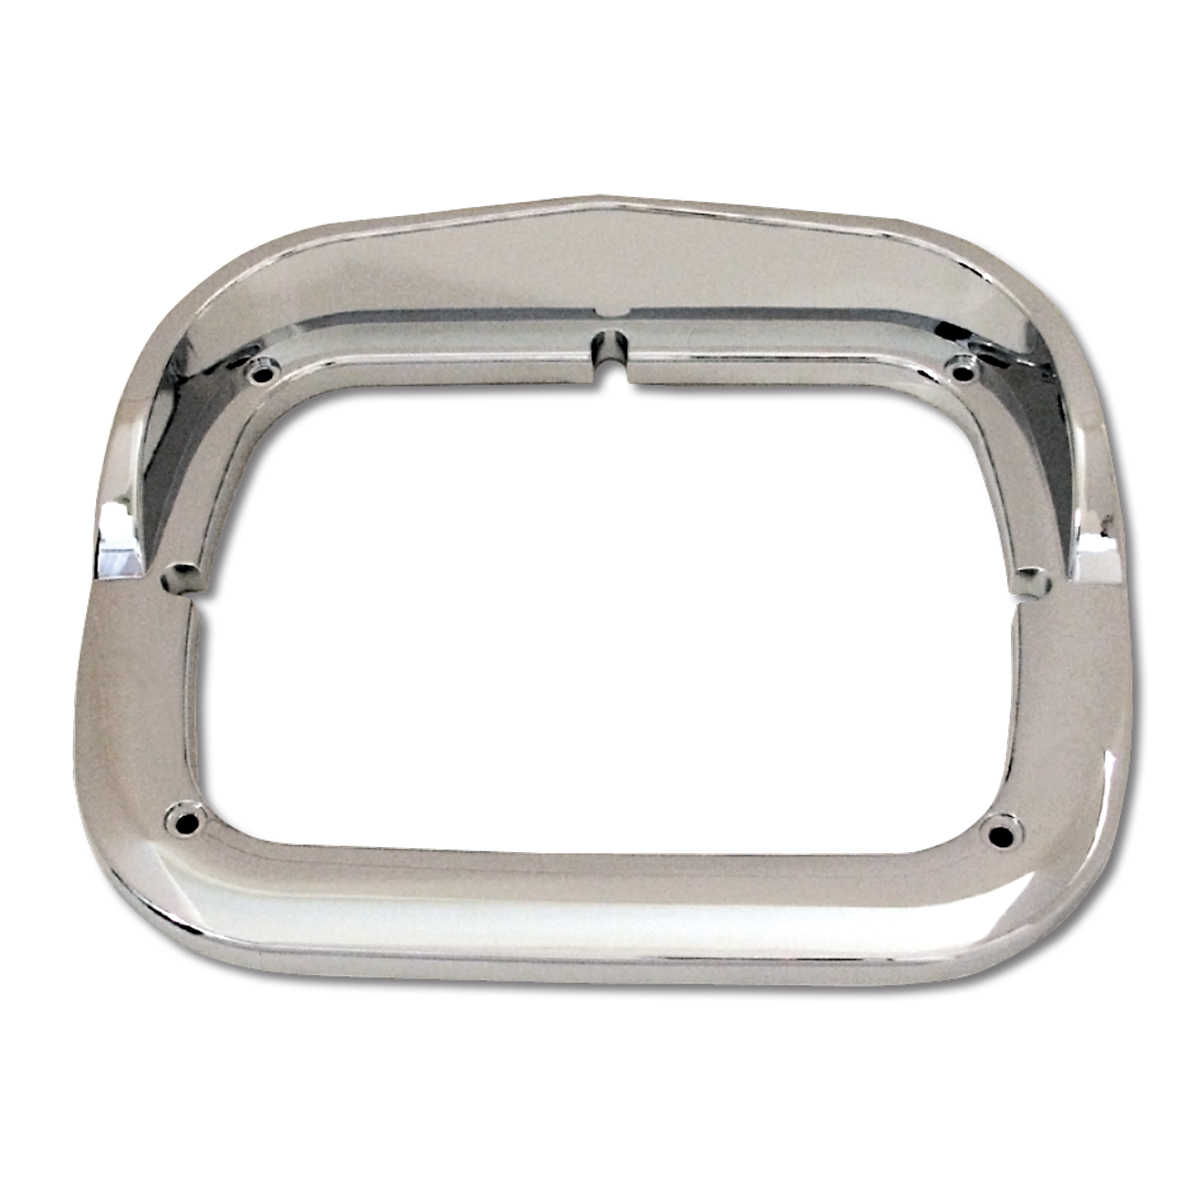 87594 Chrome Plastic Single Headlight Bezel